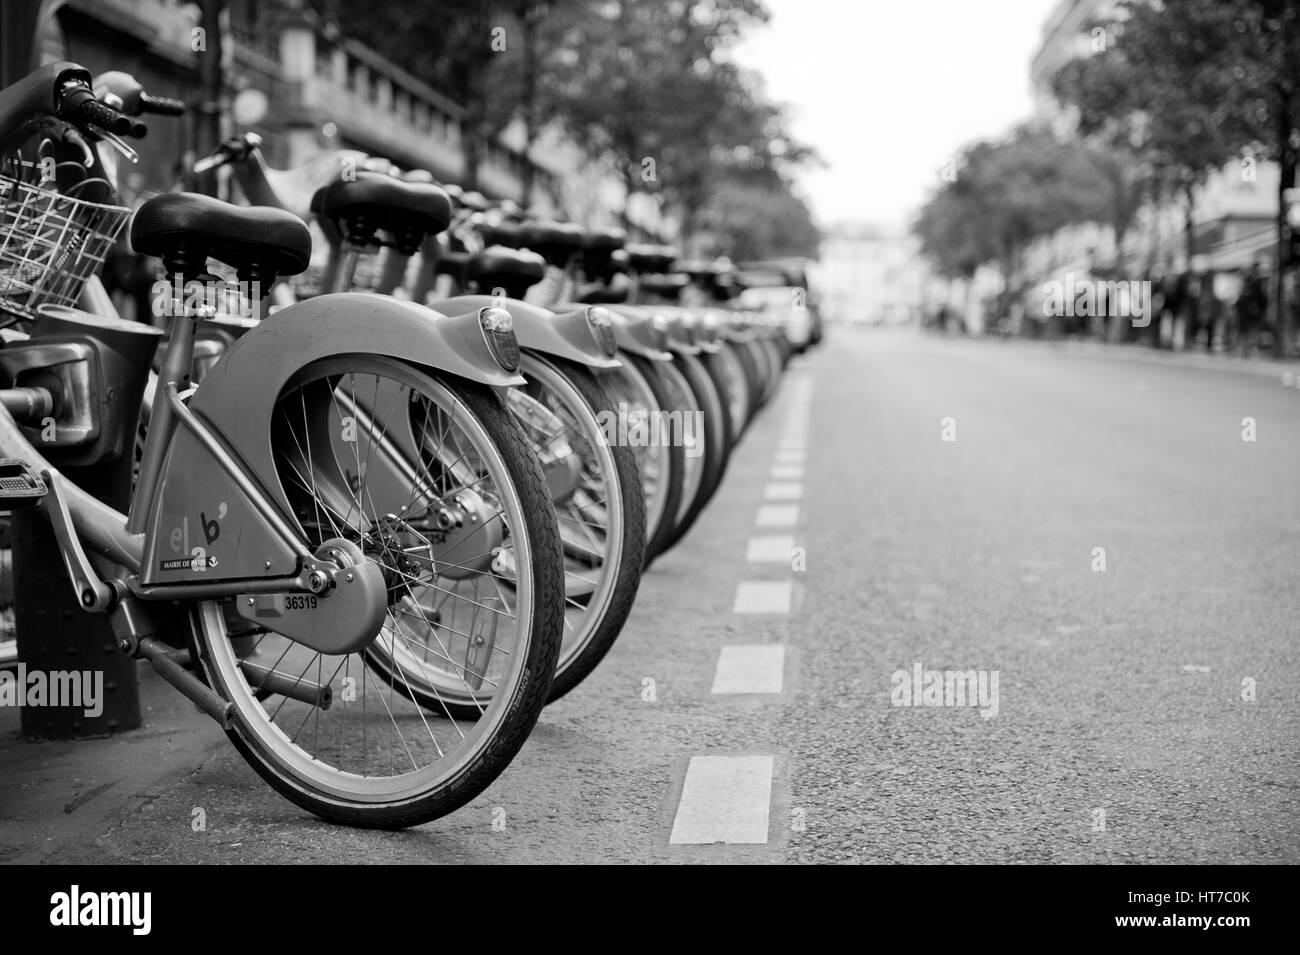 Bicycles on street in Paris Stock Photo